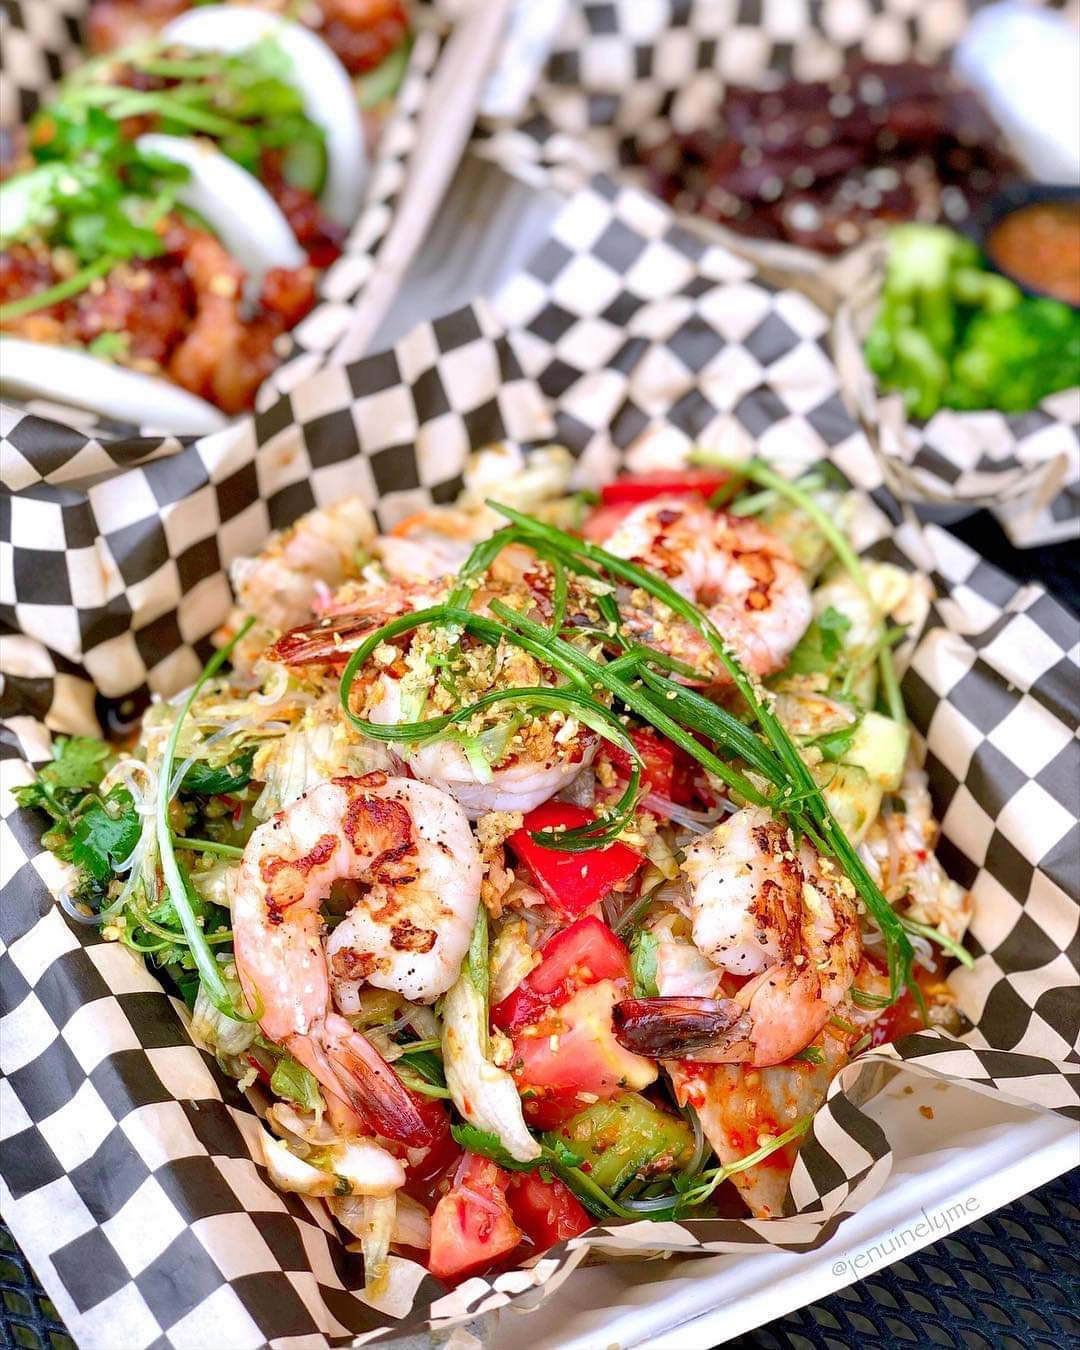 A New Food Cart Serving Lao Specialties Has Opened in Southeast's Cartlandia Food Pod